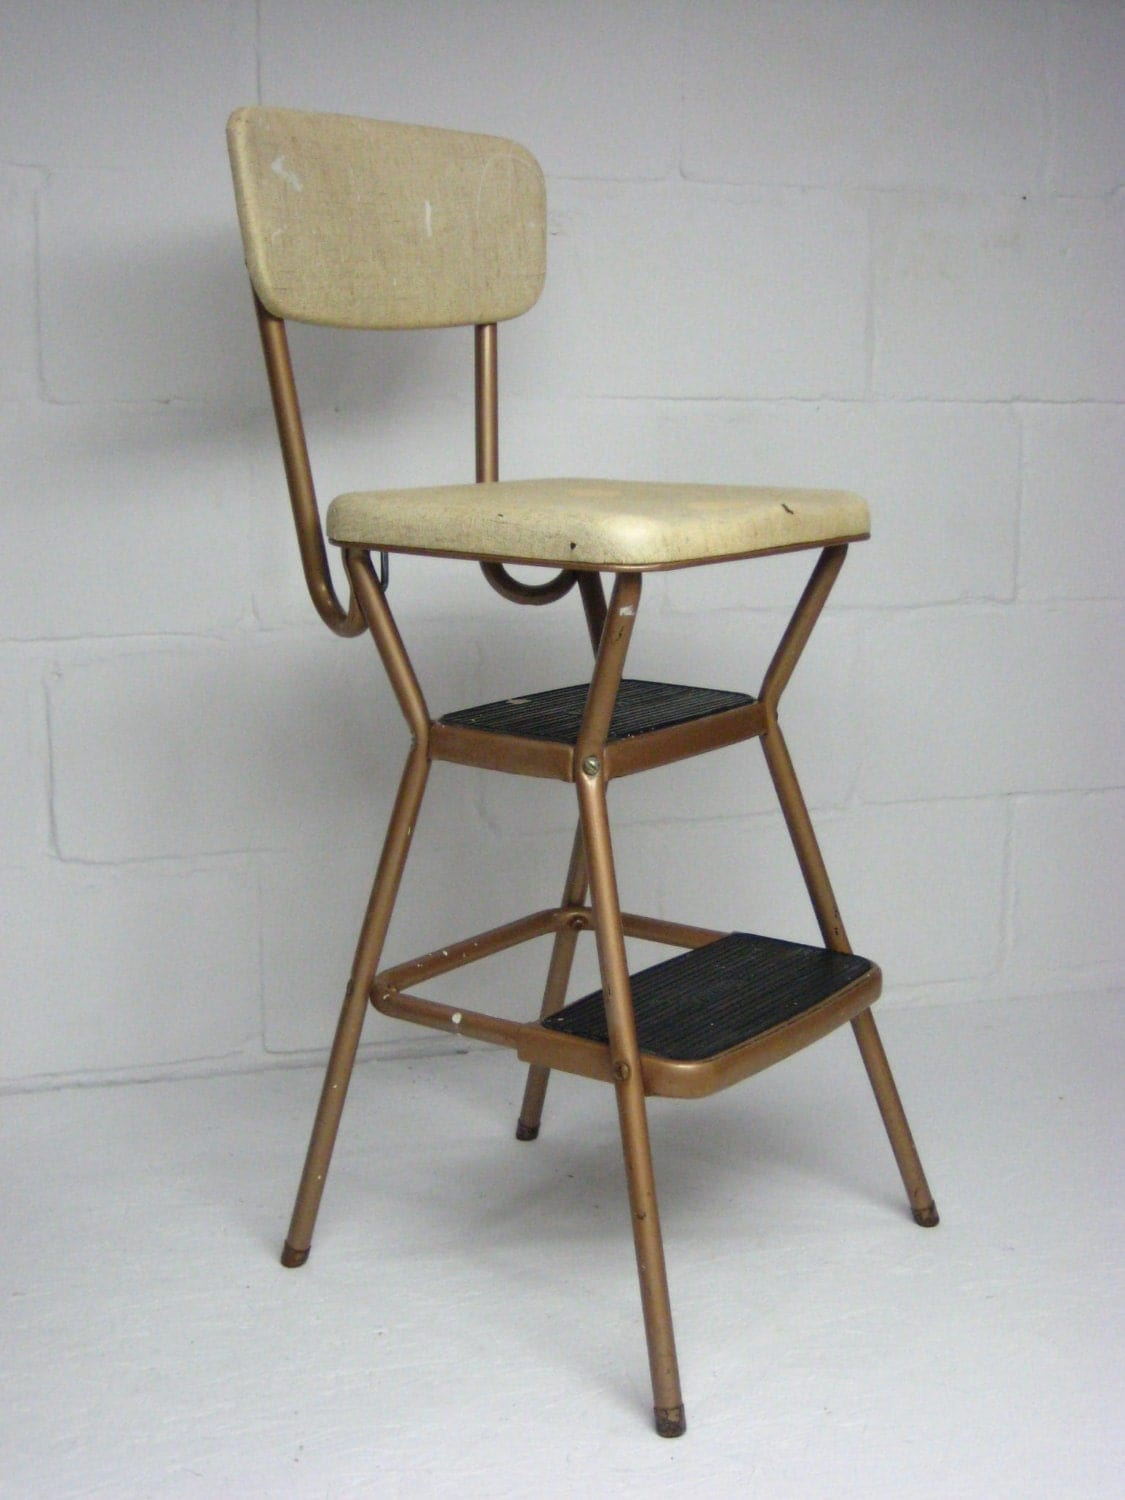 Vintage Kitchen Step Stool Cosco Kitchen Stool With Fold Up Seat Mid Century Step Stool